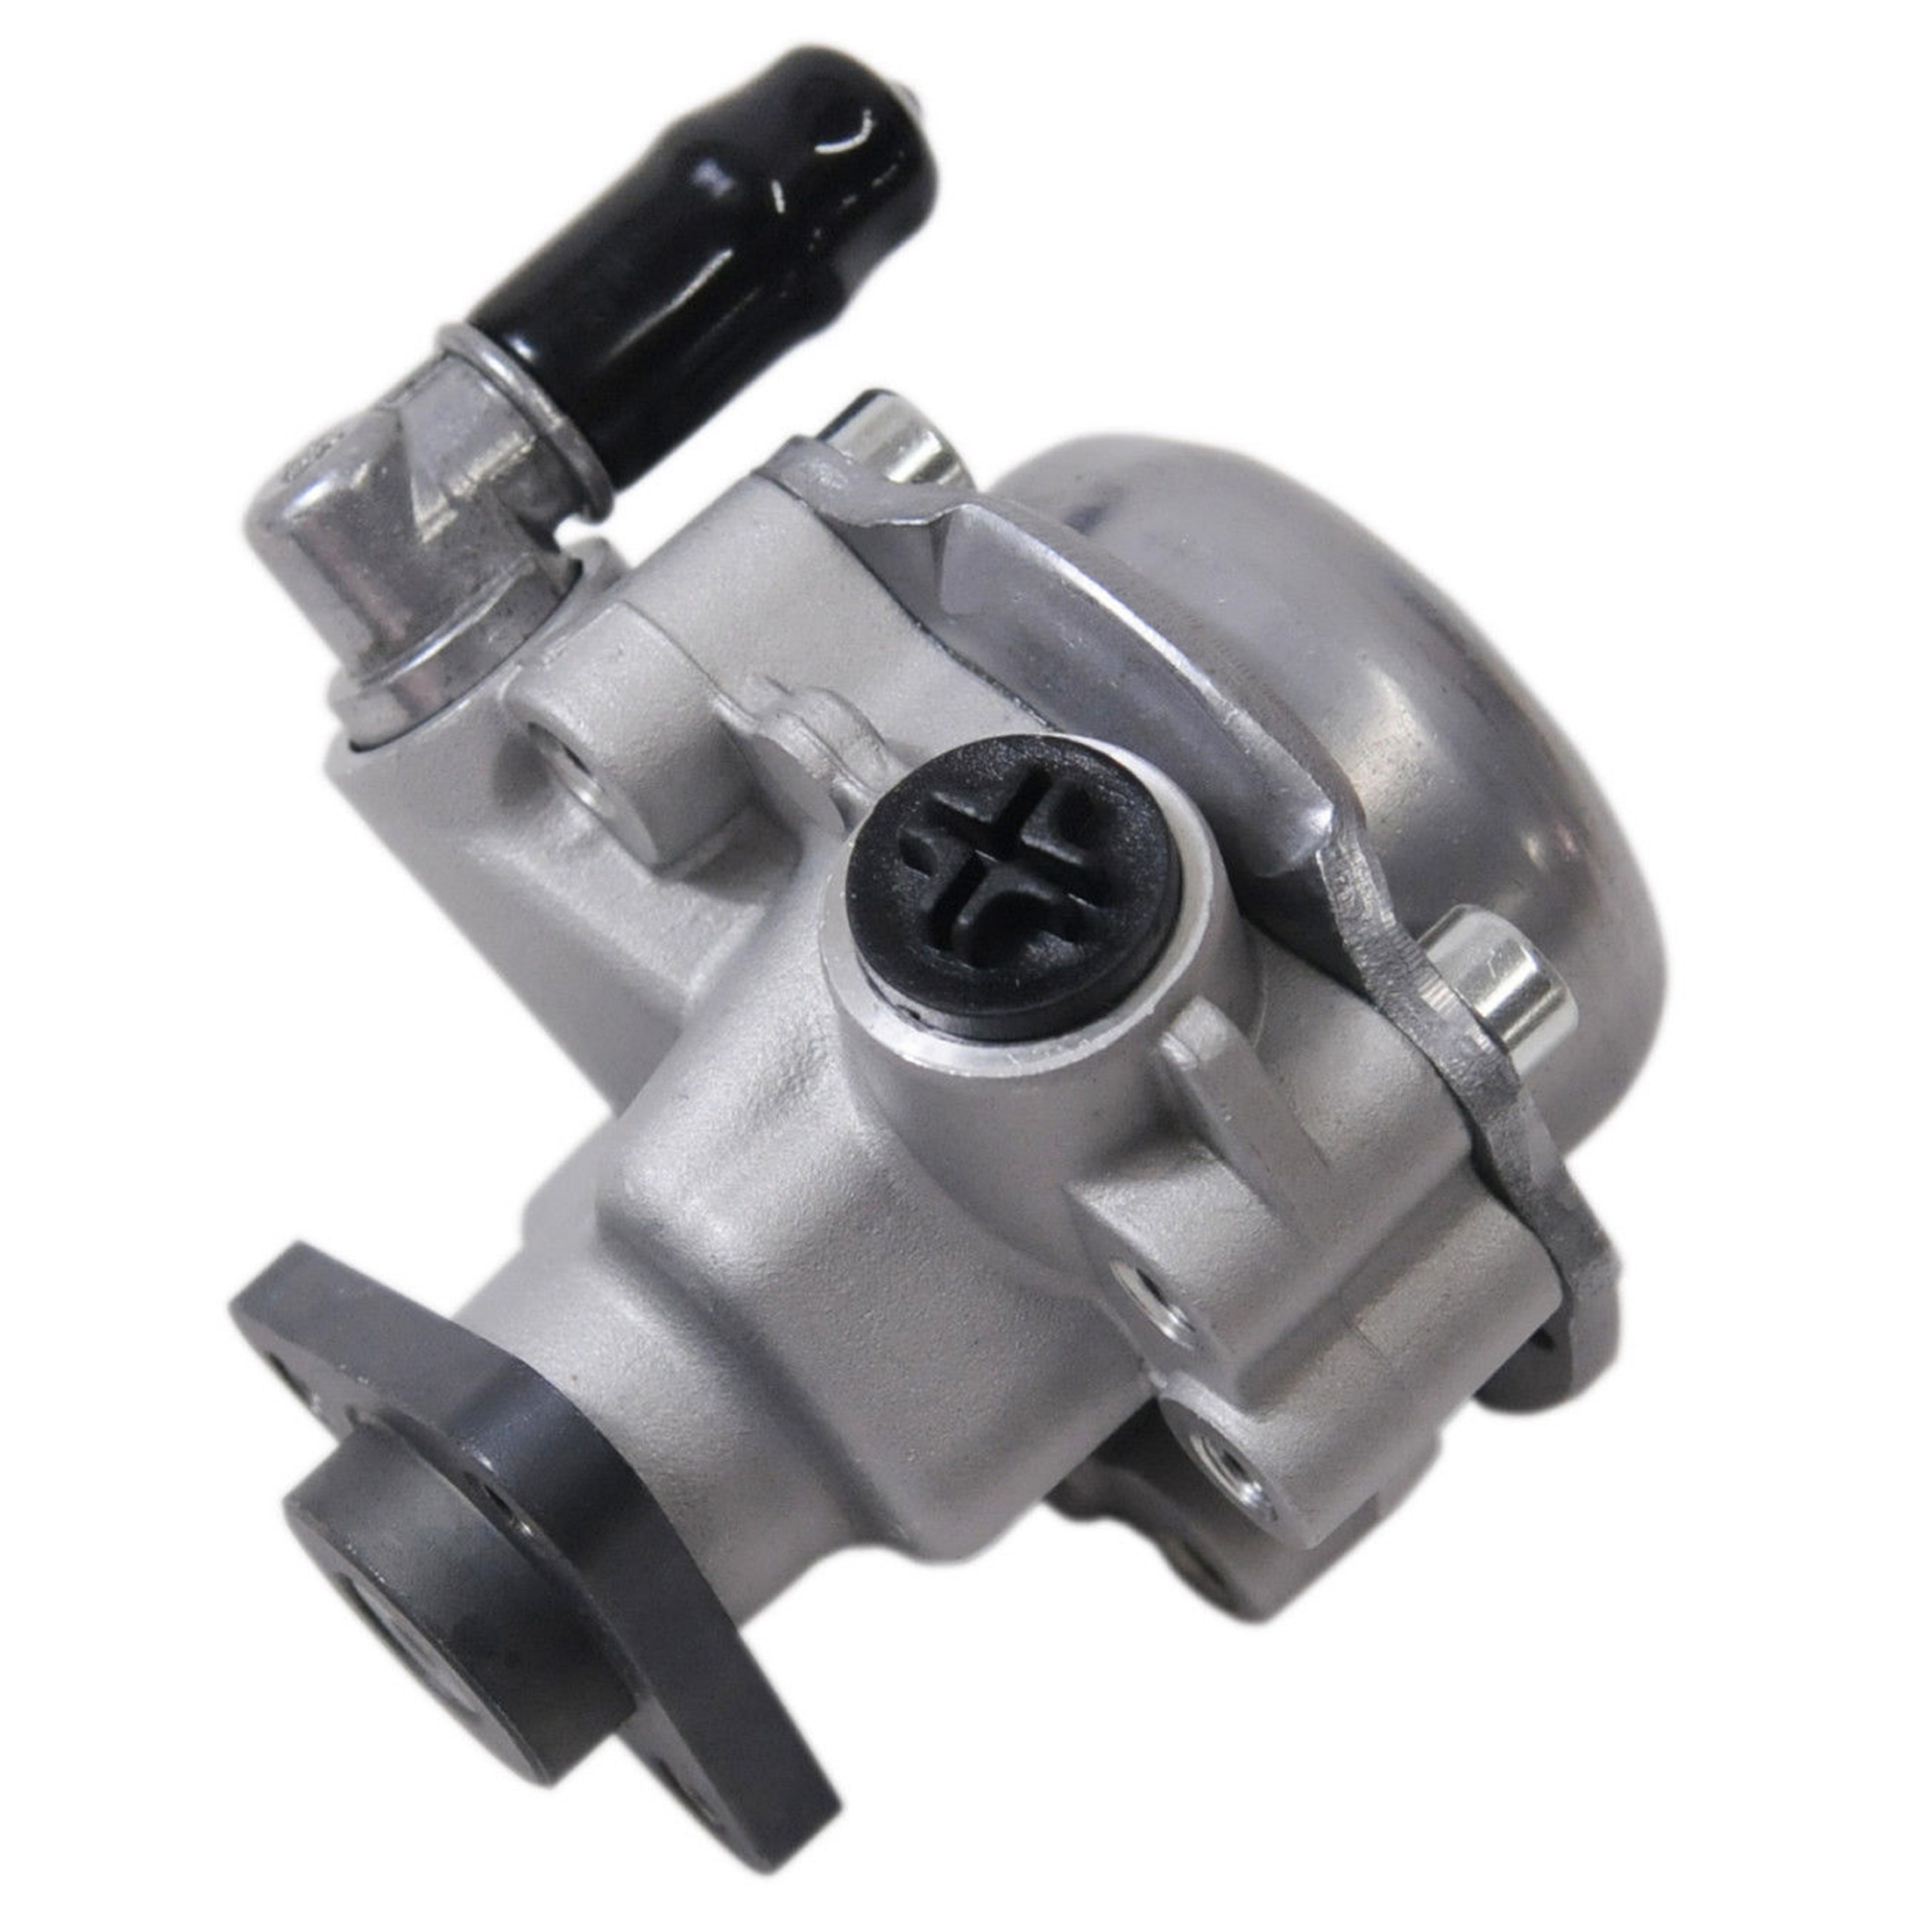 medium resolution of free shipping power steering pump for bmw e46 323i 325i 328ci 330i oe 553 58945 553 59076 55358945 55359076 32416760036 in distributors parts from